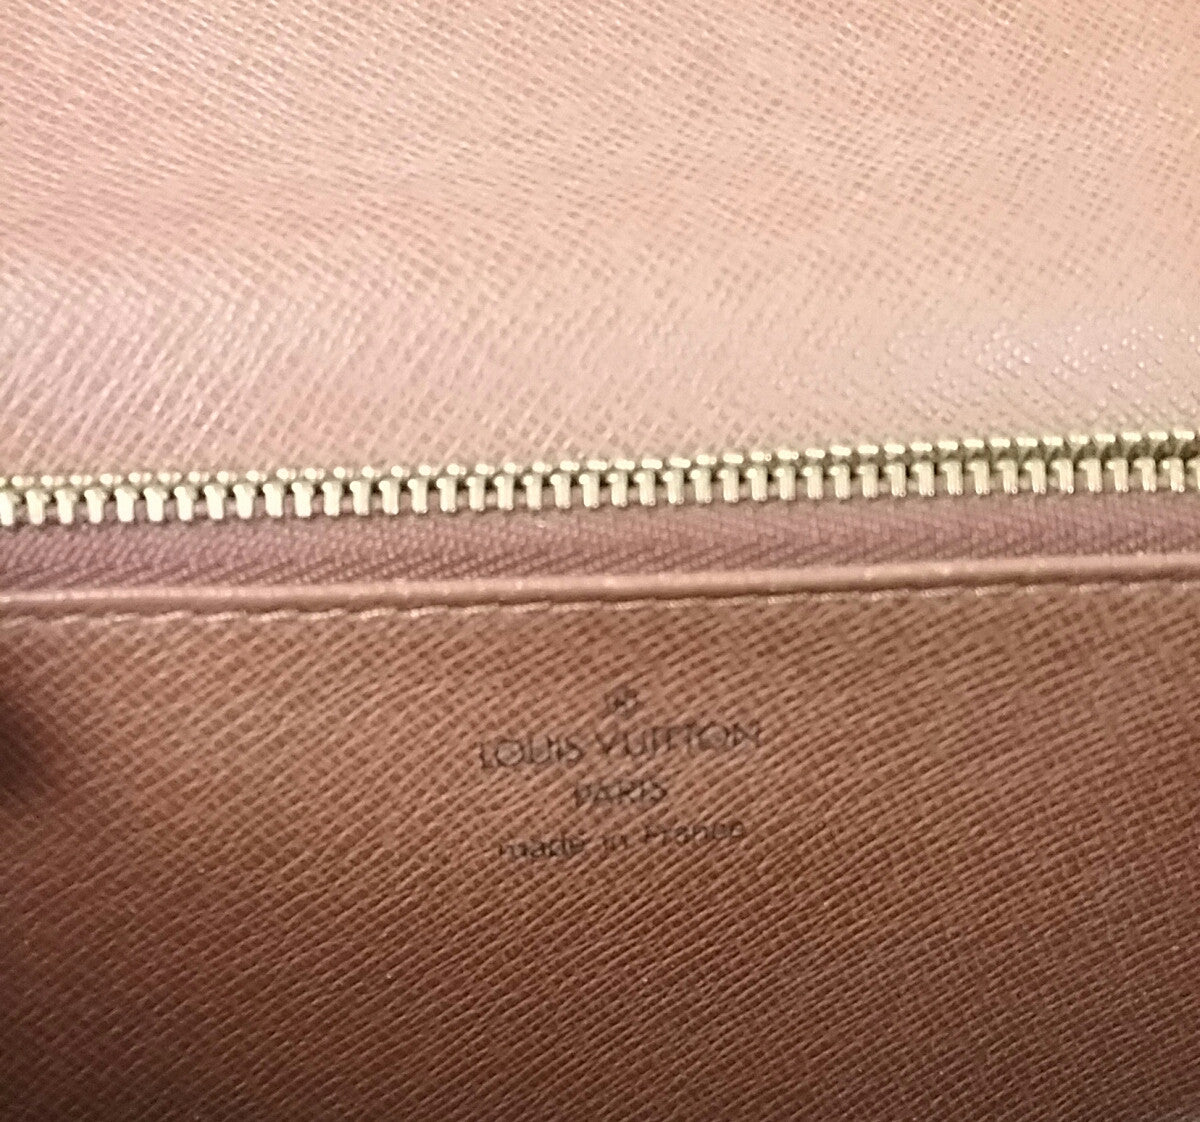 Monogram Canvas Kelly Style Handbag